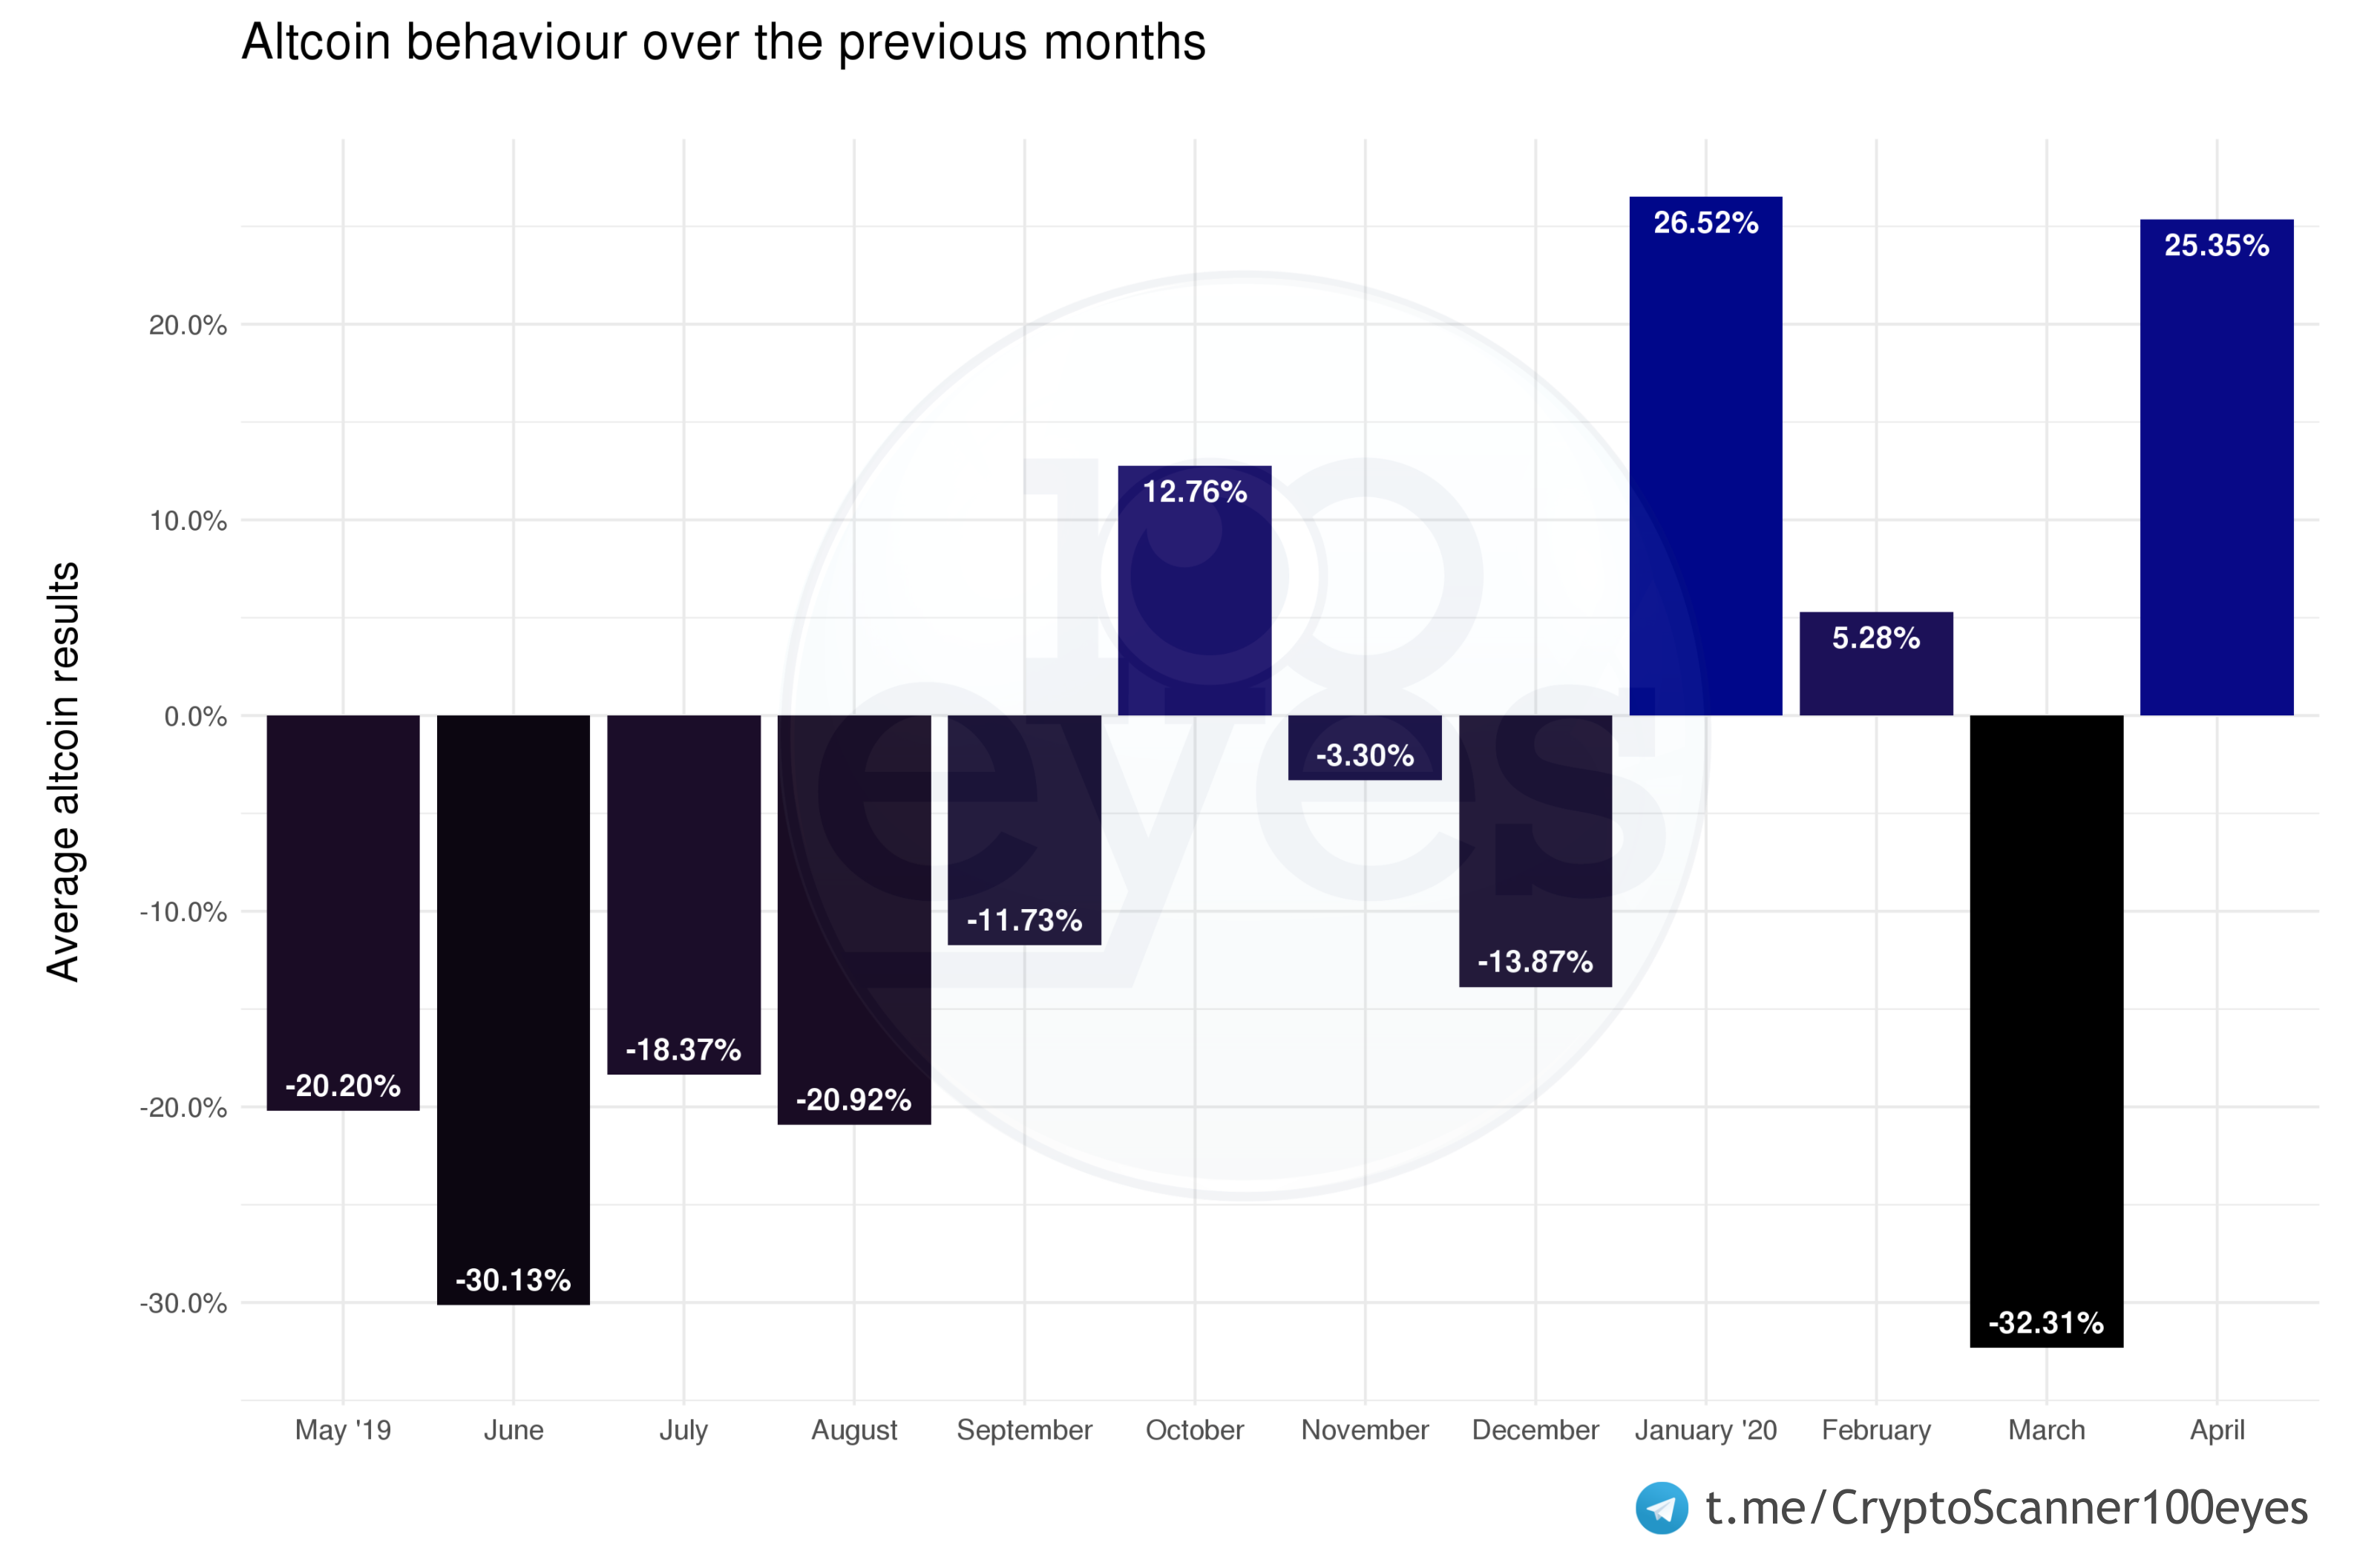 Showing the overall performance of the crypto and altcoin market over the past twelve months